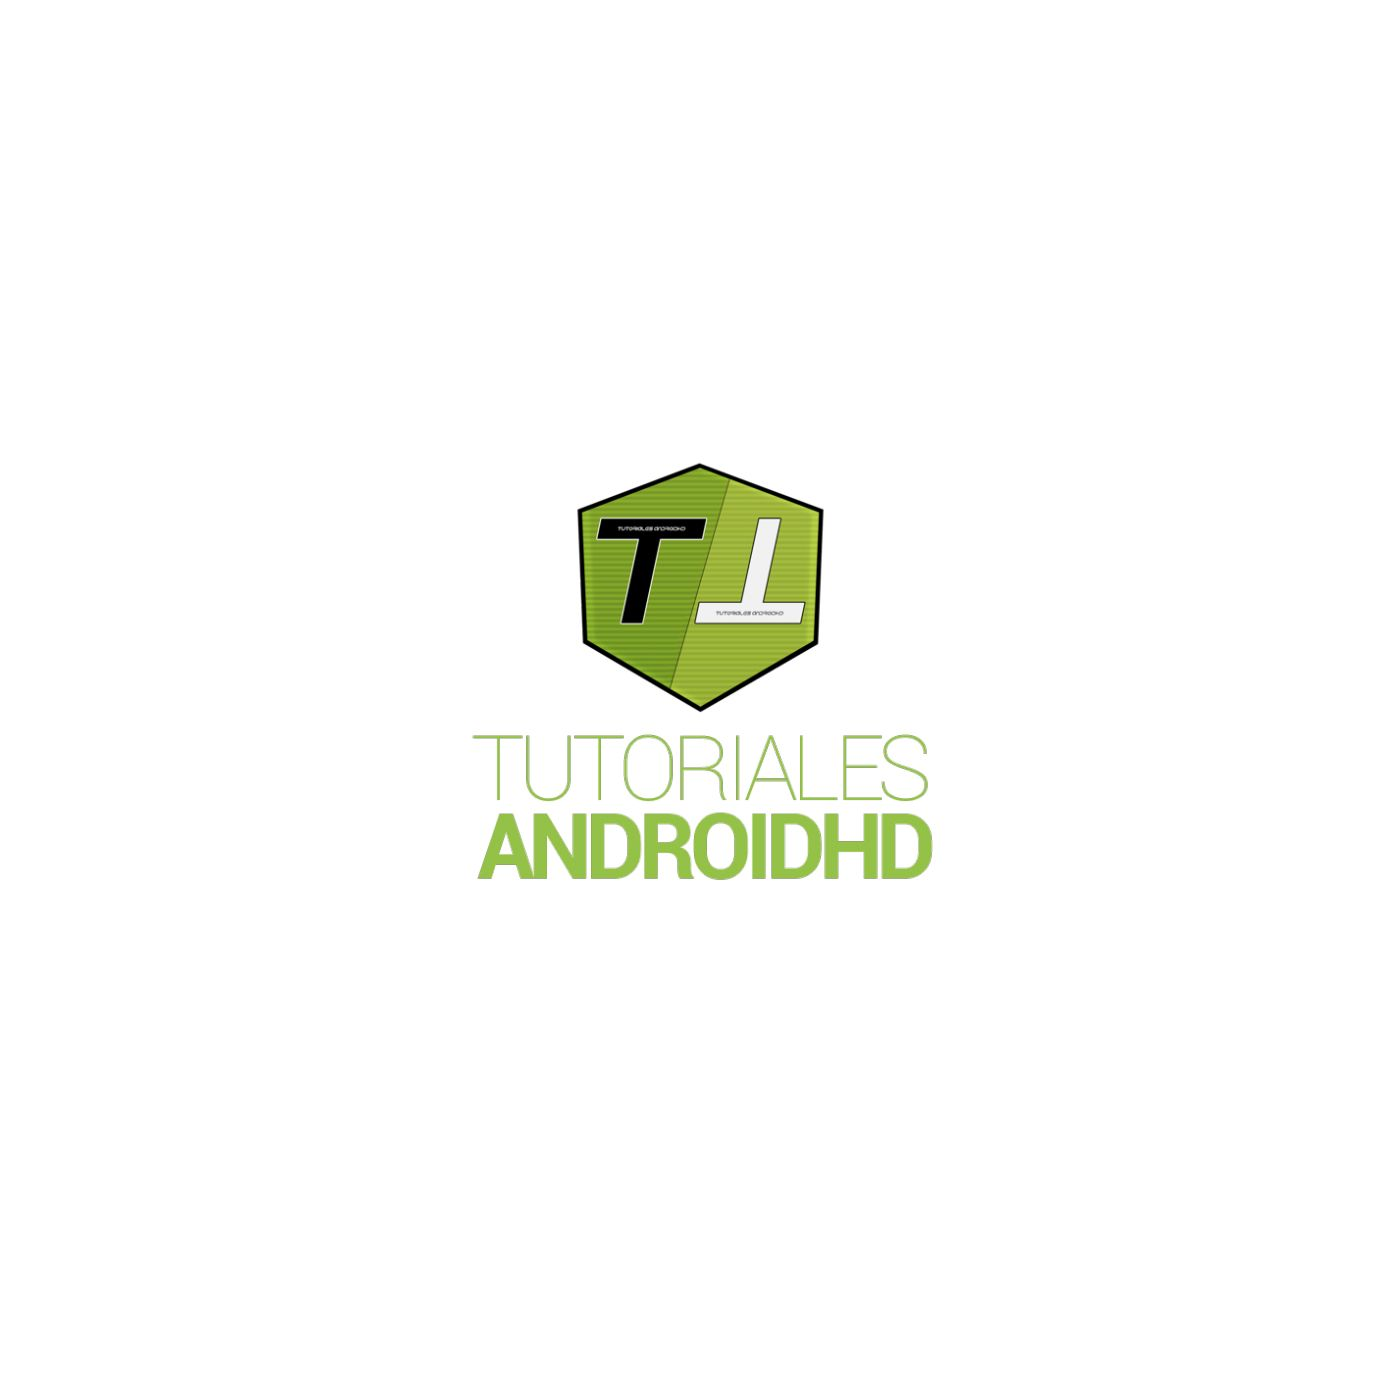 TutorialesAndroidHD